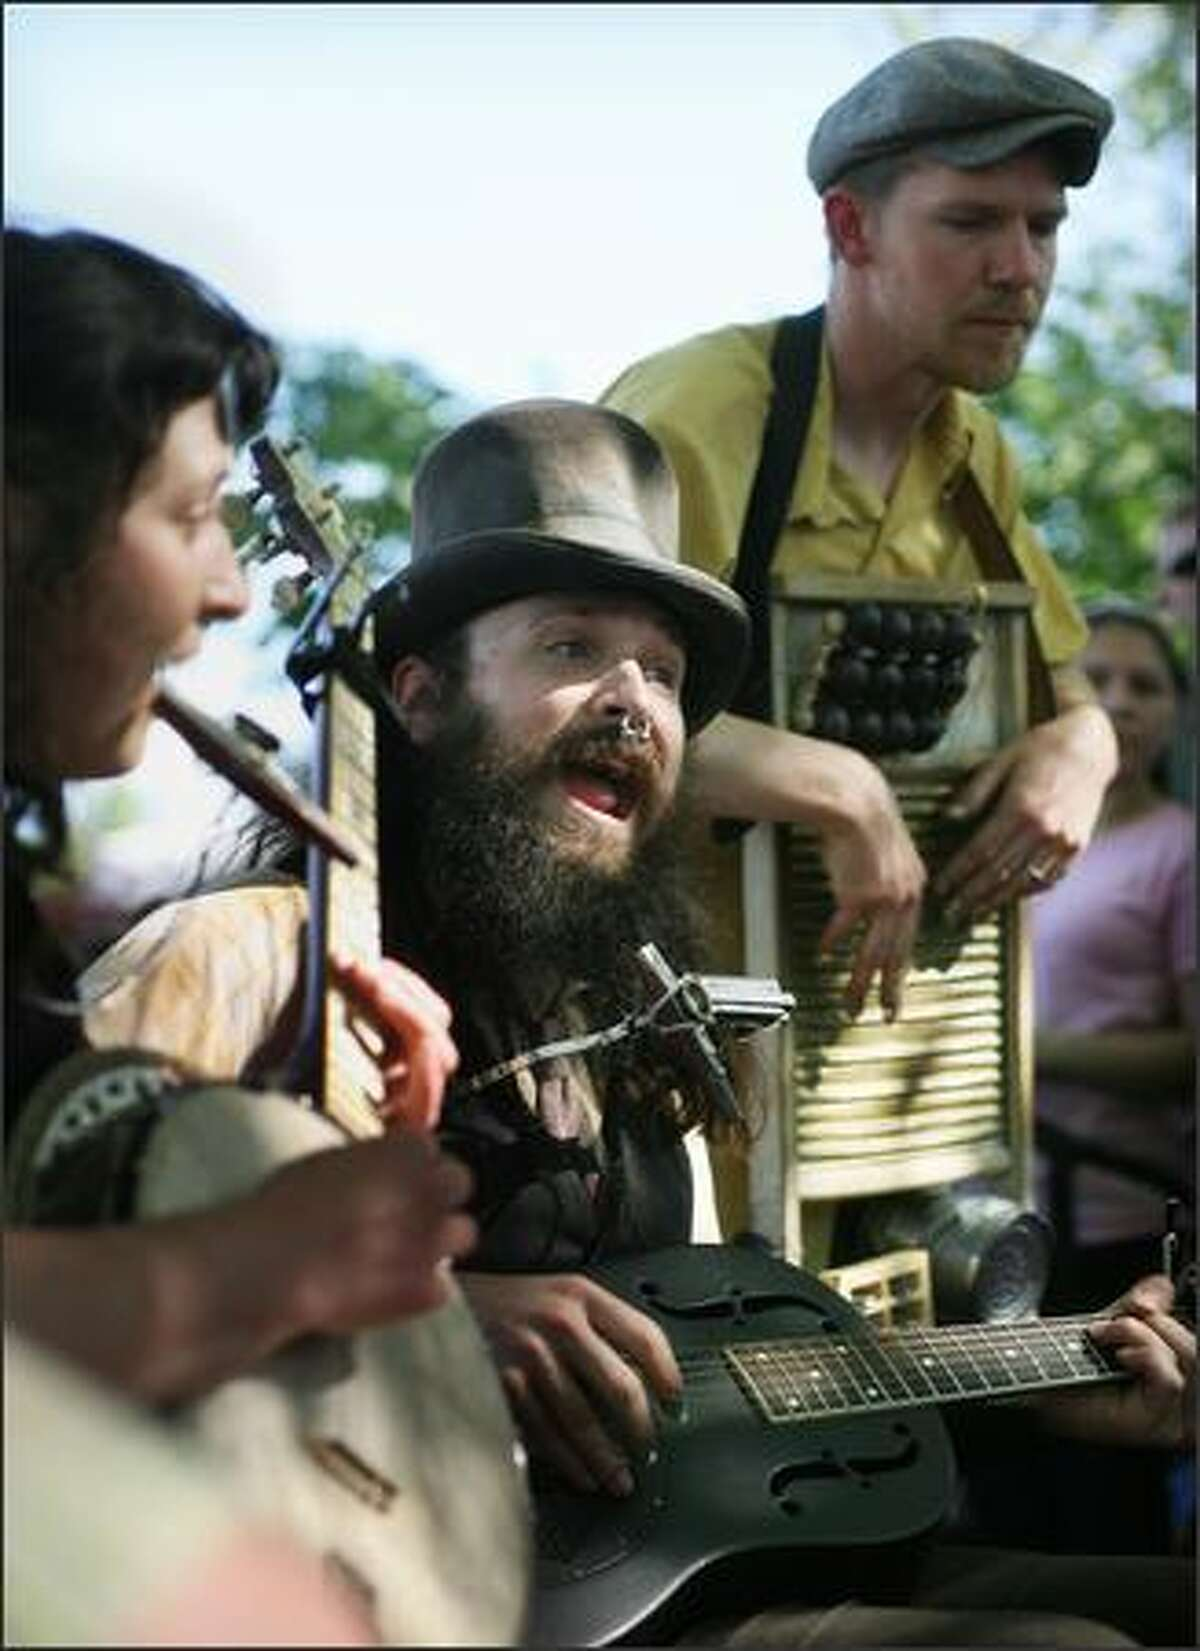 Kit Stymee Stovepipe sings with the Port Townsend band Crow Quill Night Owls during the Northwest Folklife Festival at the Seattle Center on Saturday.